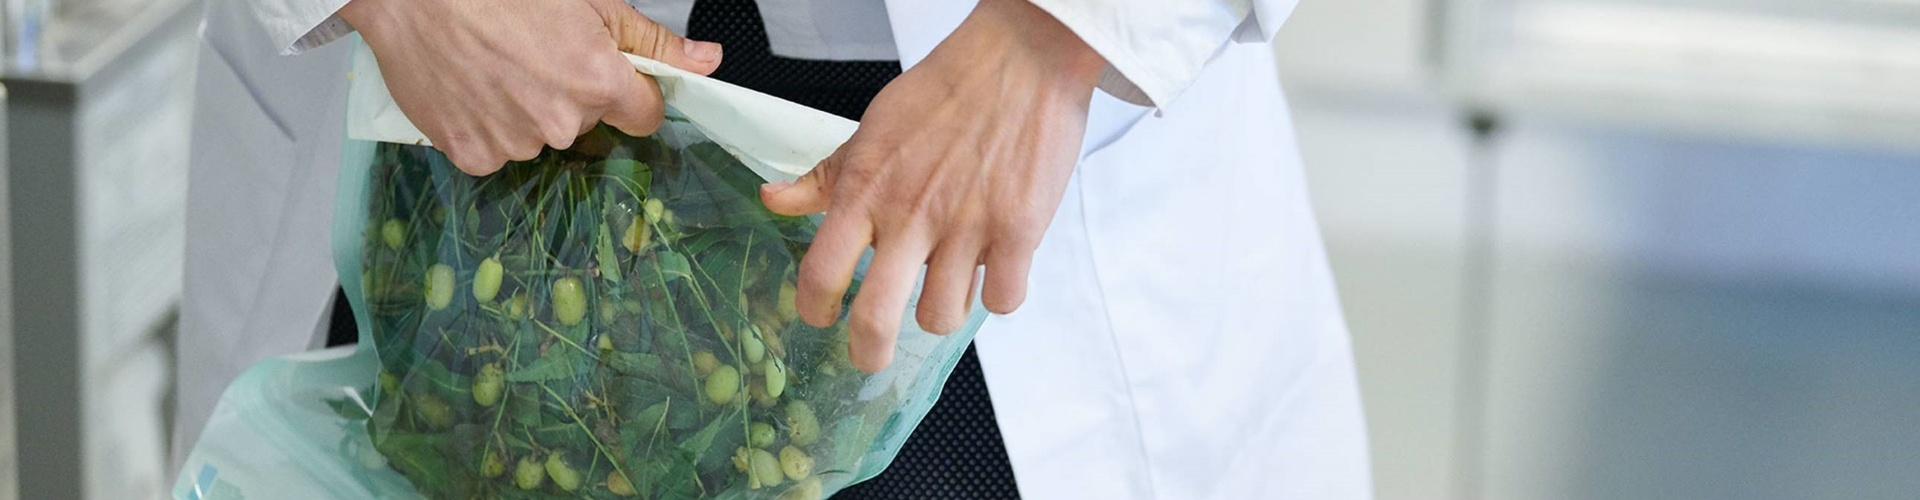 Small herbs in a sealed bag being held by a Farm2Future employee